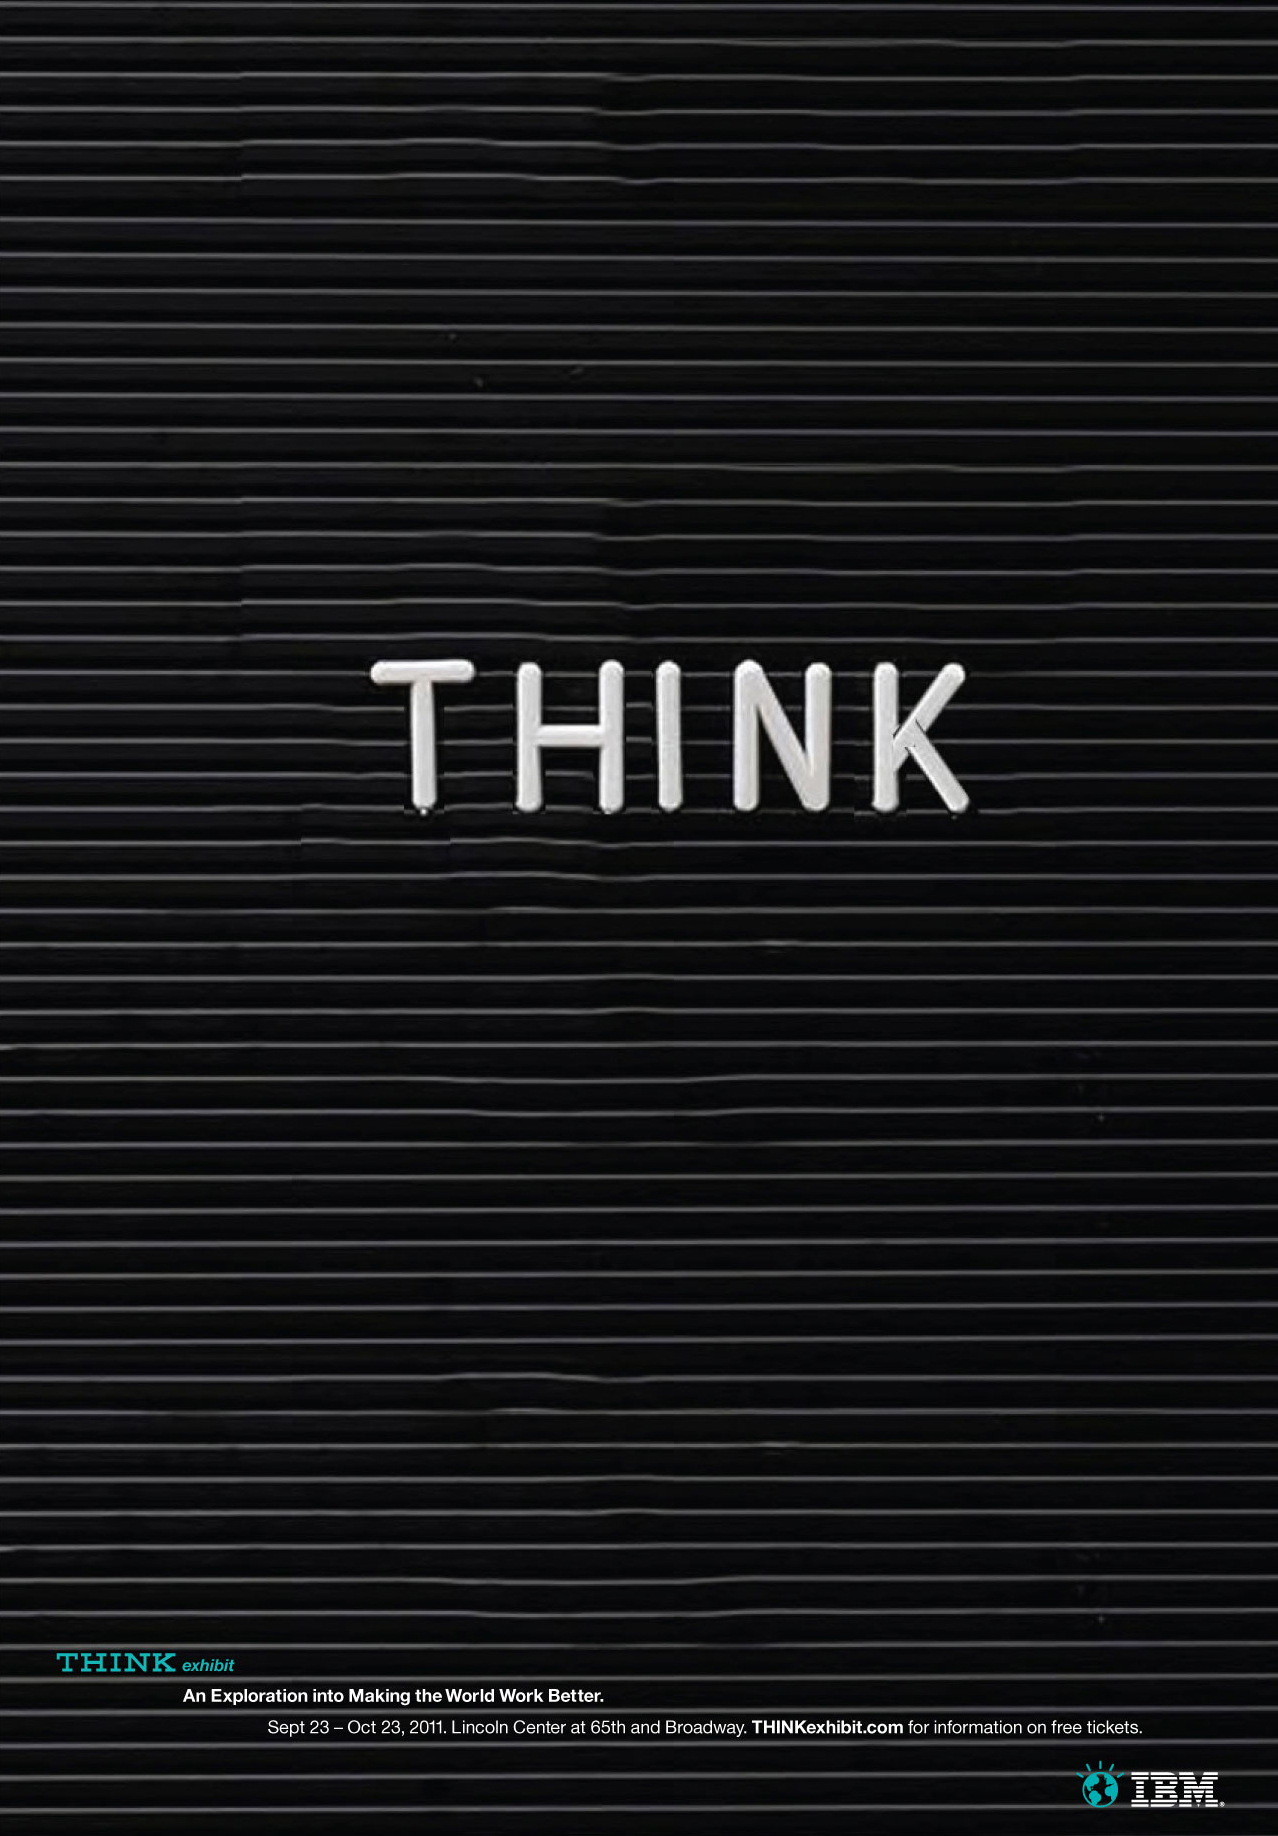 IBM Invite You to Think - The Inspiration Room